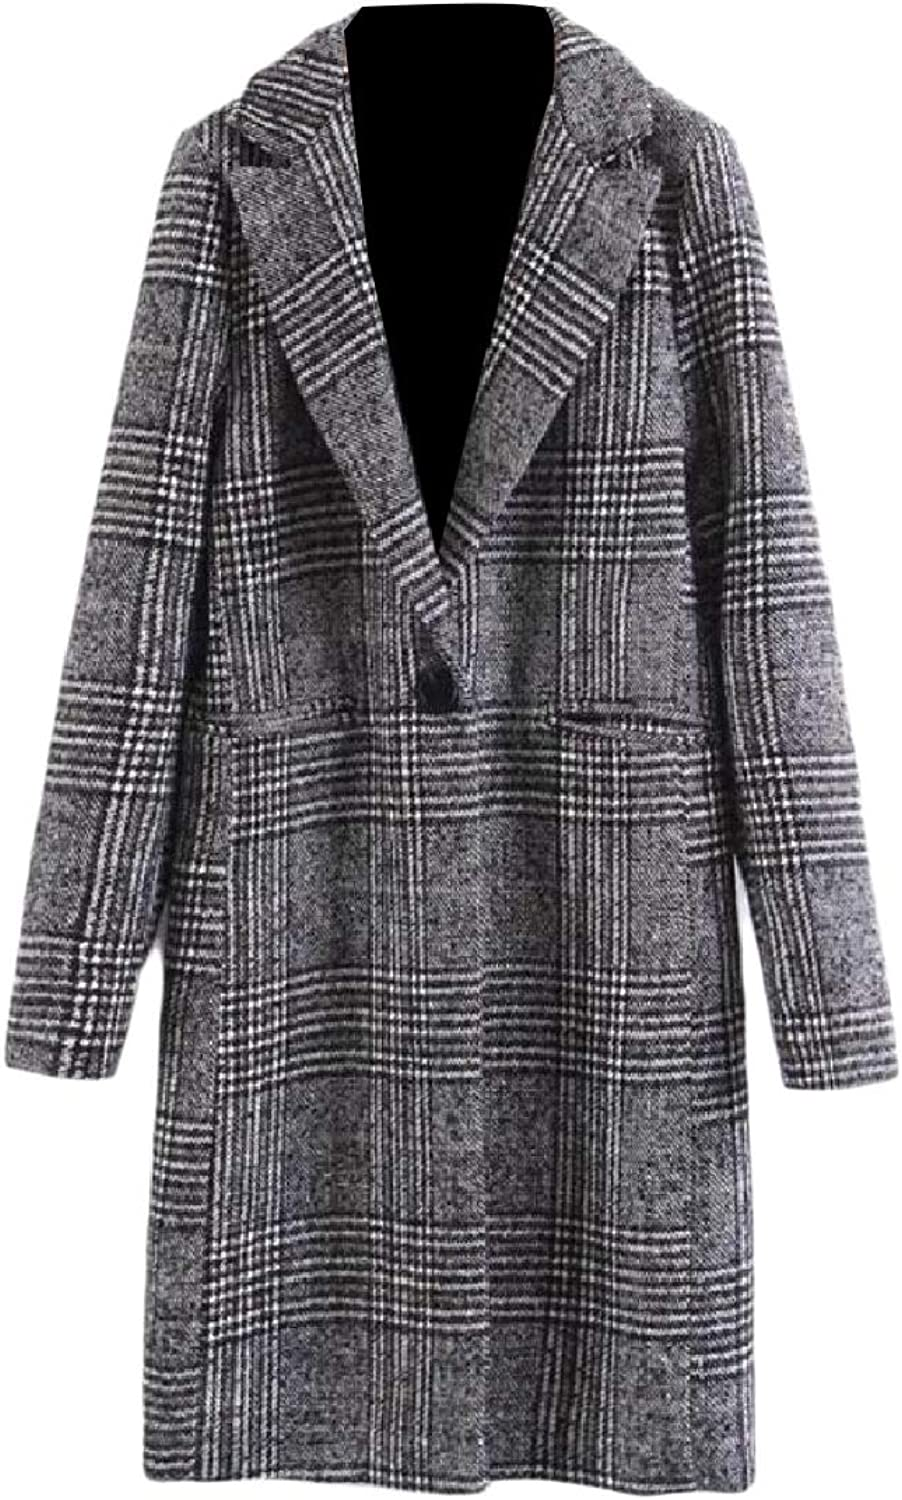 TaoNice Womens Plaid Fitness Merino Classics Elegant Trench Duffle Coat